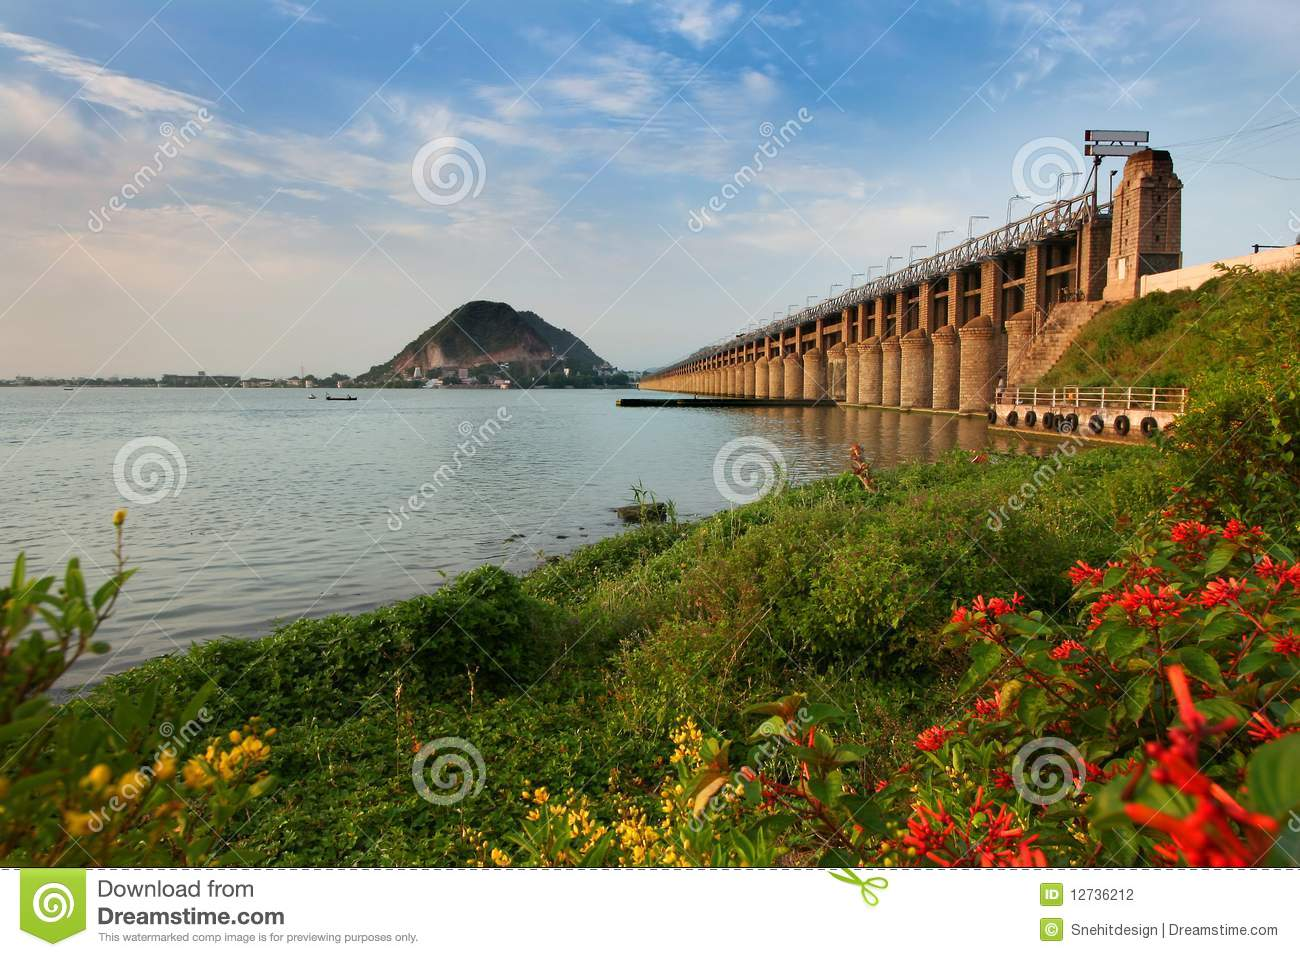 Prakasam Barrage bridge